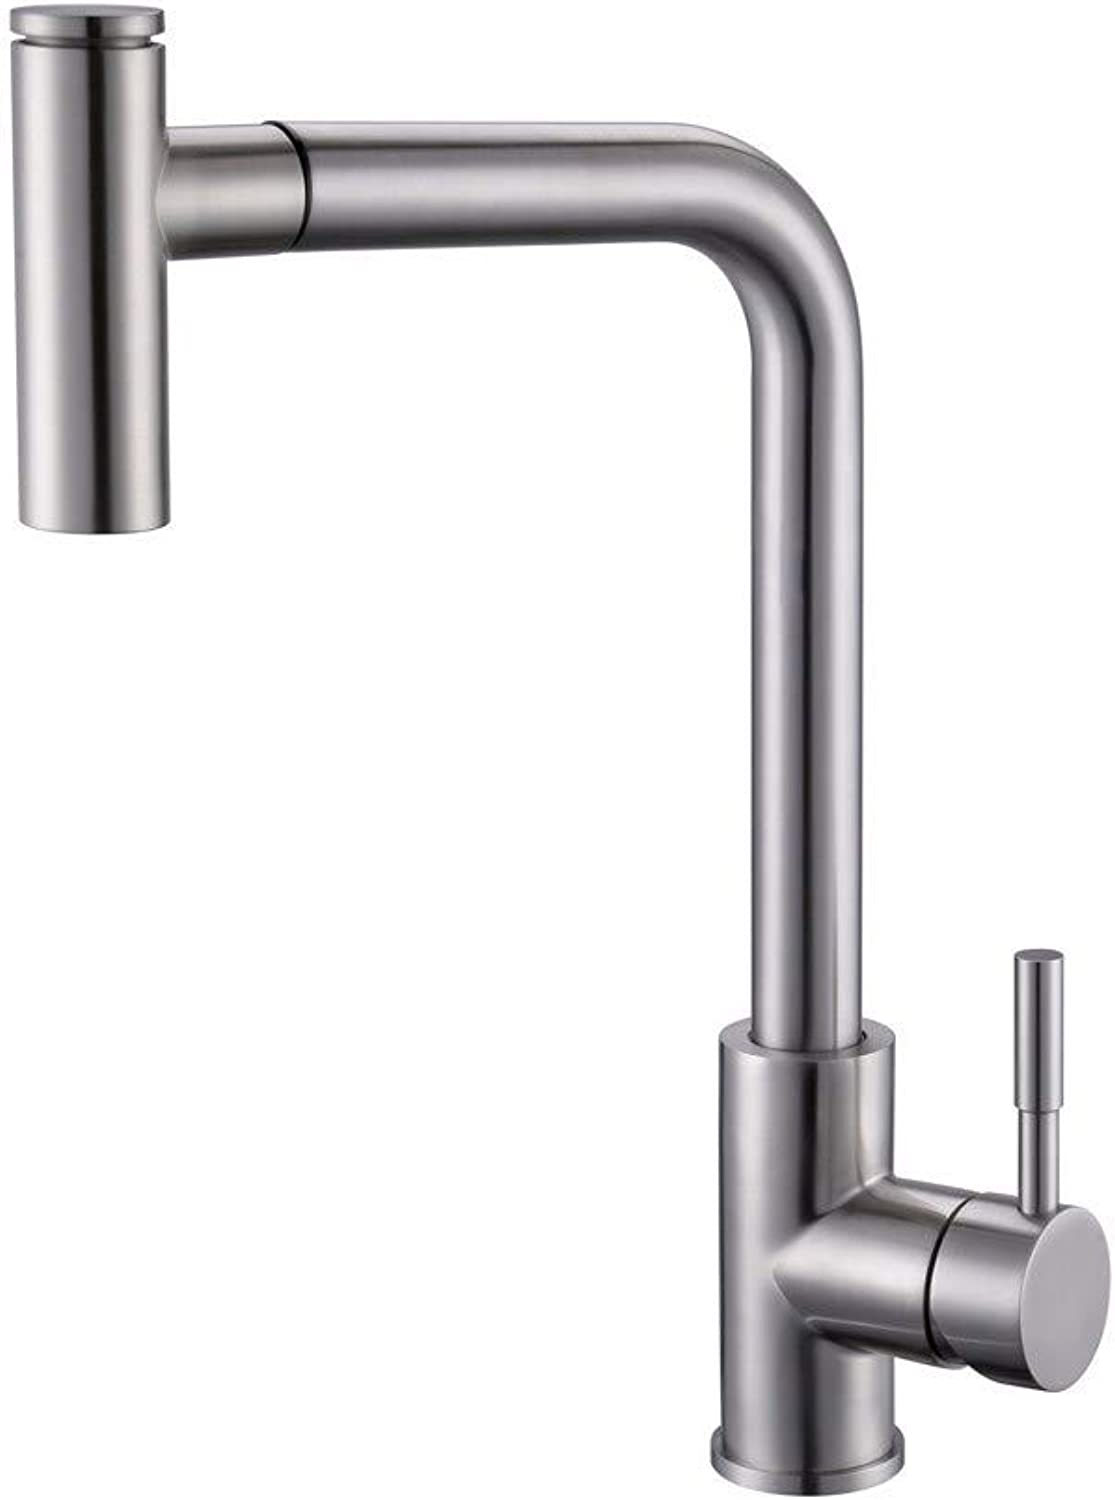 KaO0YaN-Tap Stainless Steel Pull Faucet Faucet Faucet e32345